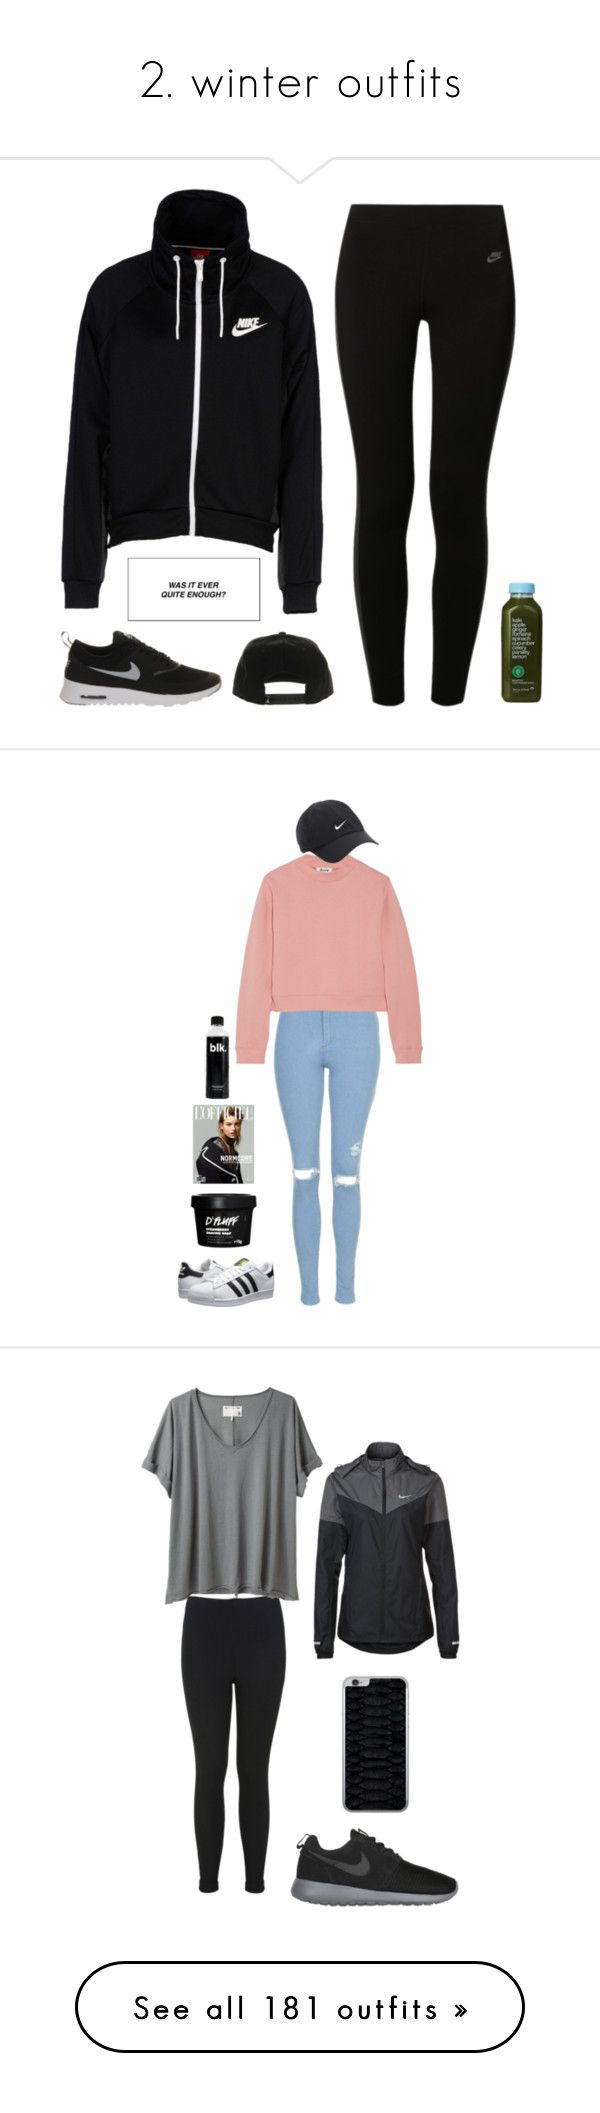 """2. winter outfits"" by noshaniya ❤ liked on Polyvore featuring NIKE, Kale, women's clothing, women, female, woman, misses, juniors, plus size clothing and Topshop"